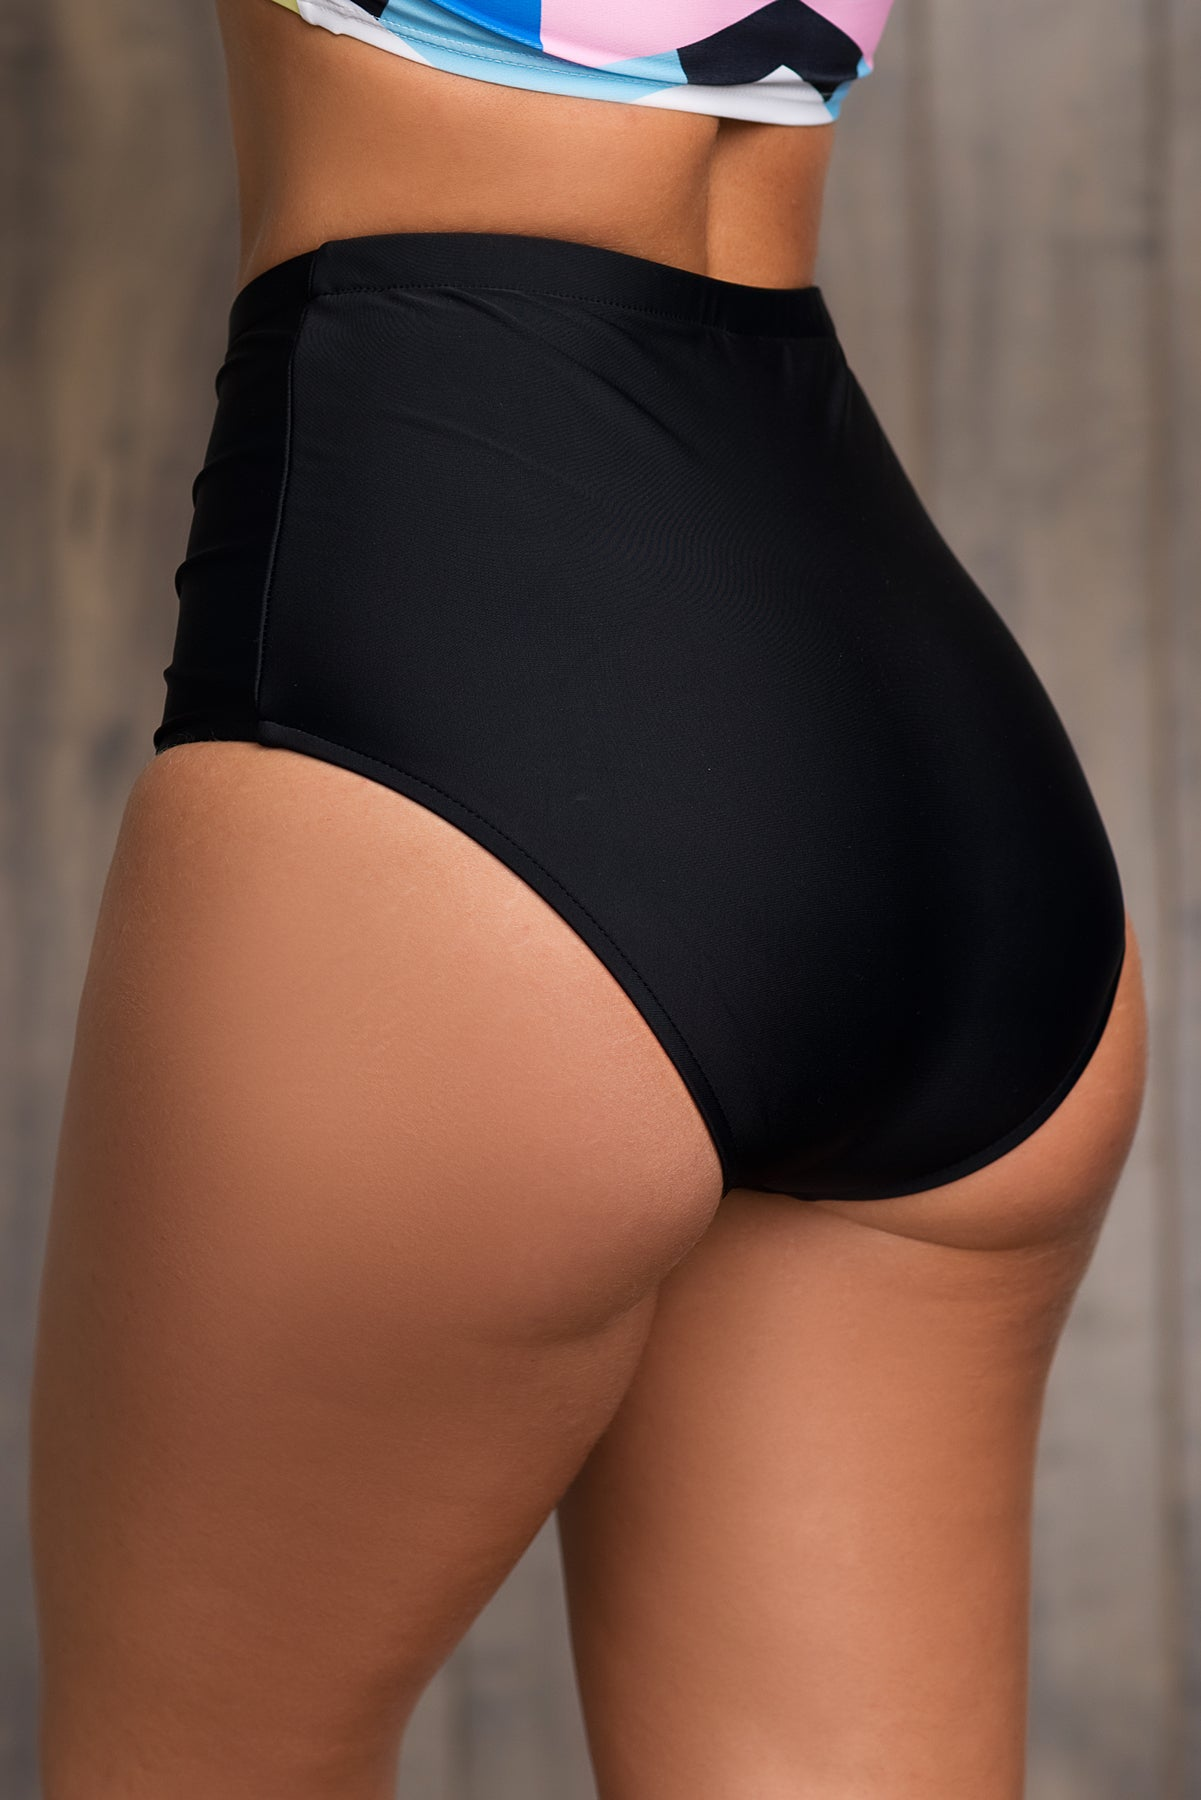 Fiesta Beach -High Waisted  Bottom Black